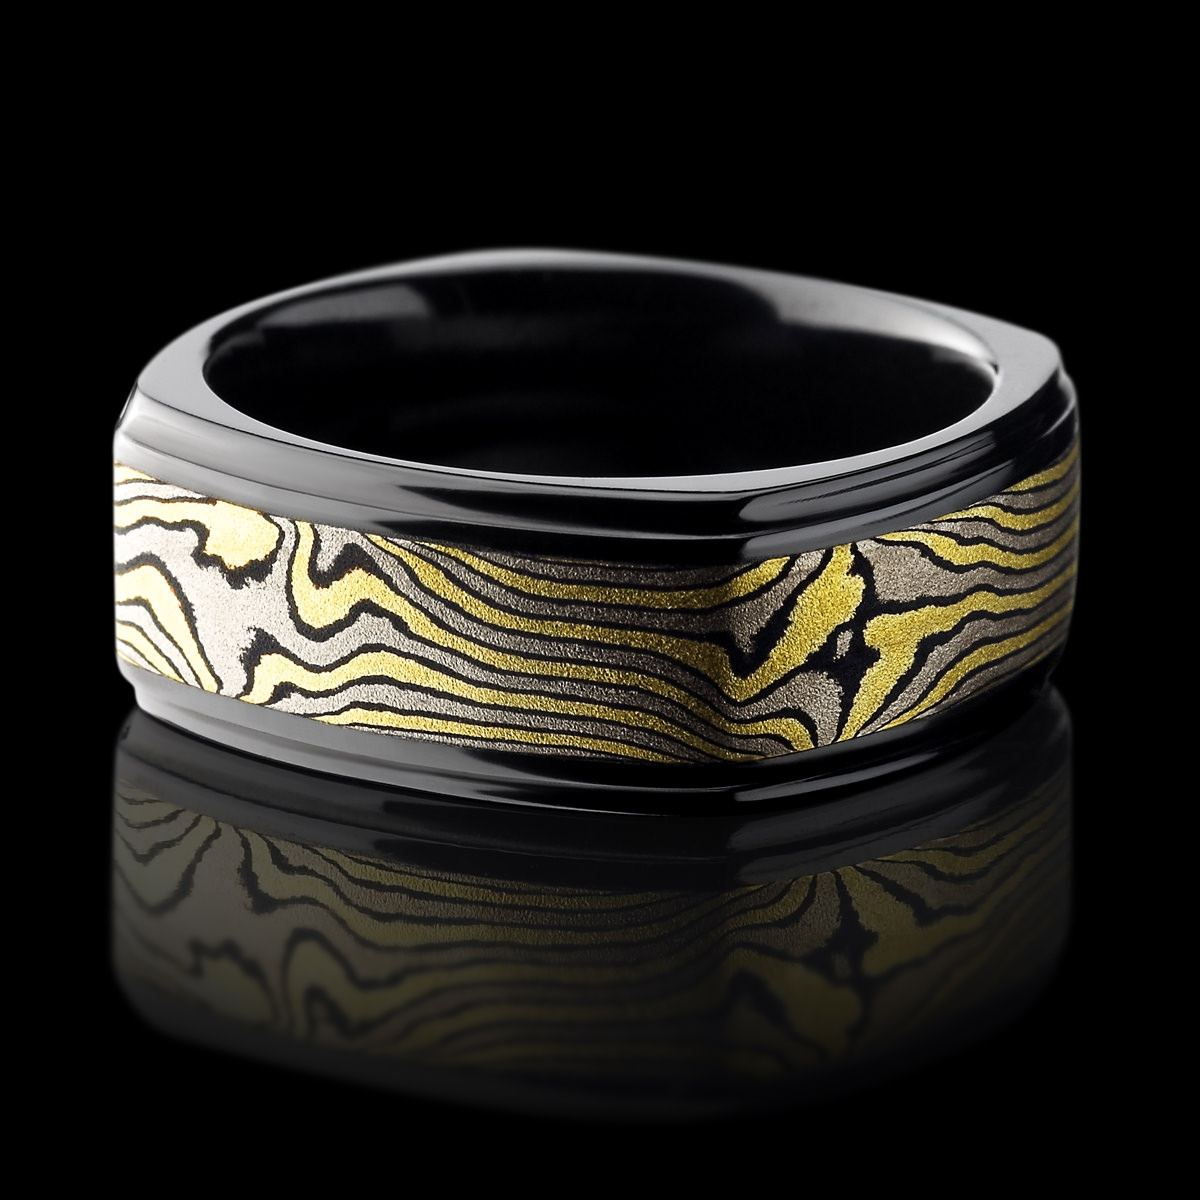 Black Zirconium Ring With Mokume Gane – Lashbrook Designs In Black Zirconium Wedding Bands (View 3 of 15)